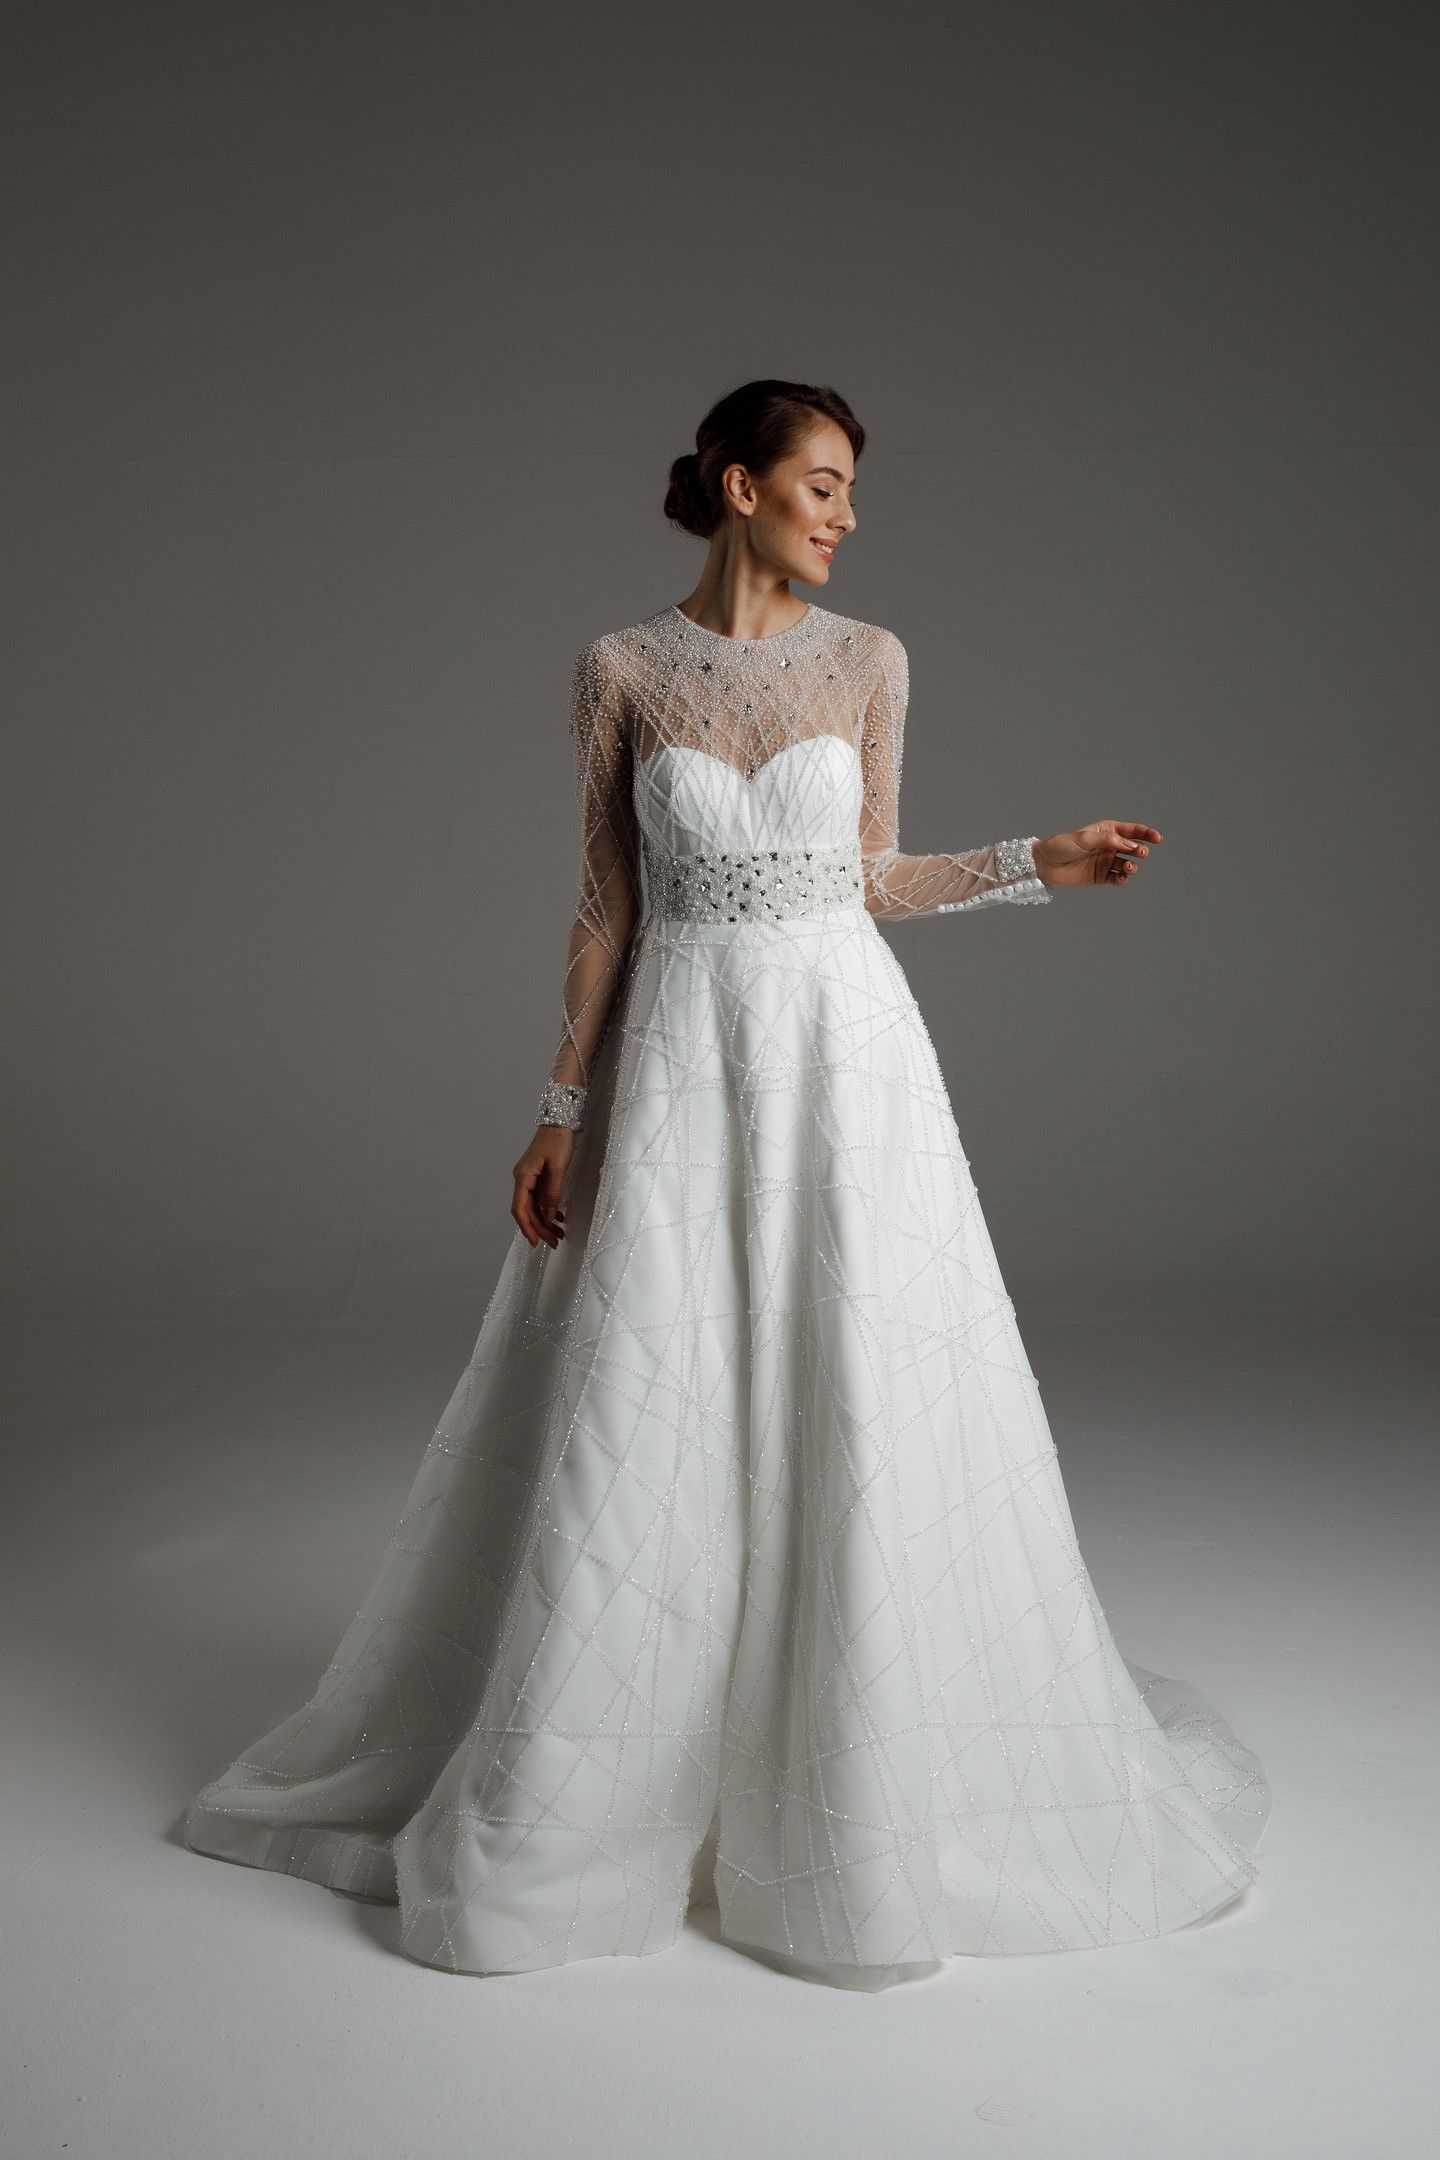 Gabriel gown, 2020, couture, dress, bridal, off-white, satin, embroidery, sleeves, train, A-line, popular